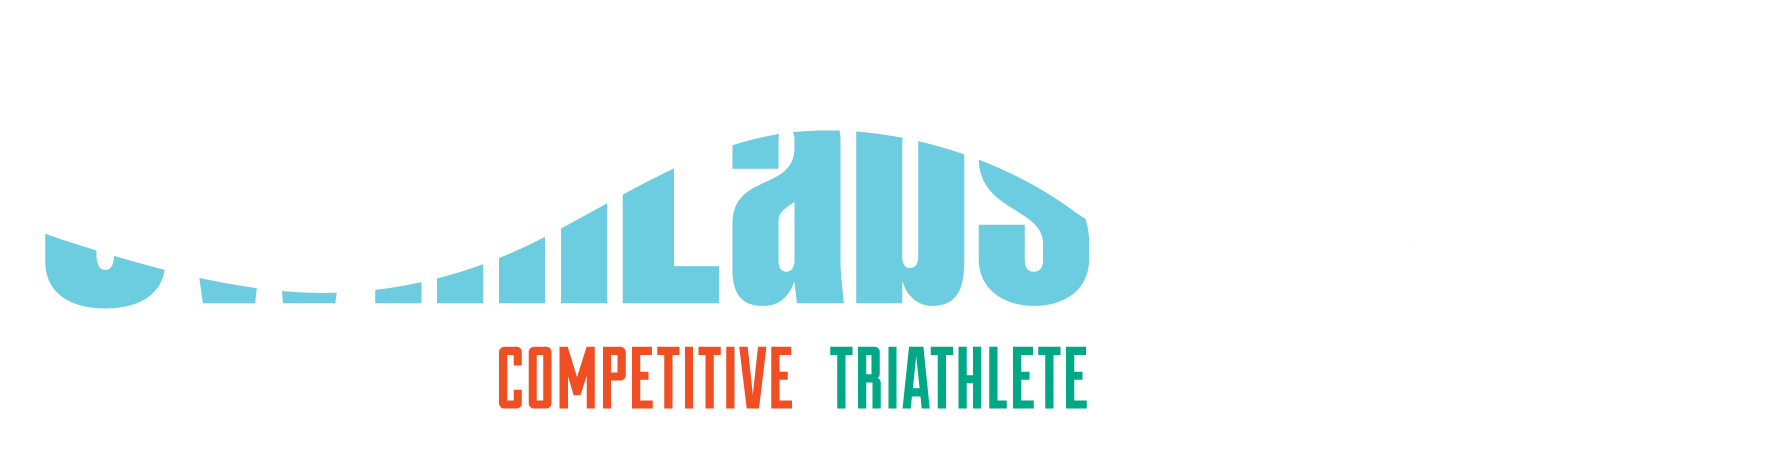 SwimLabs Swim School + SafeSplash Logo